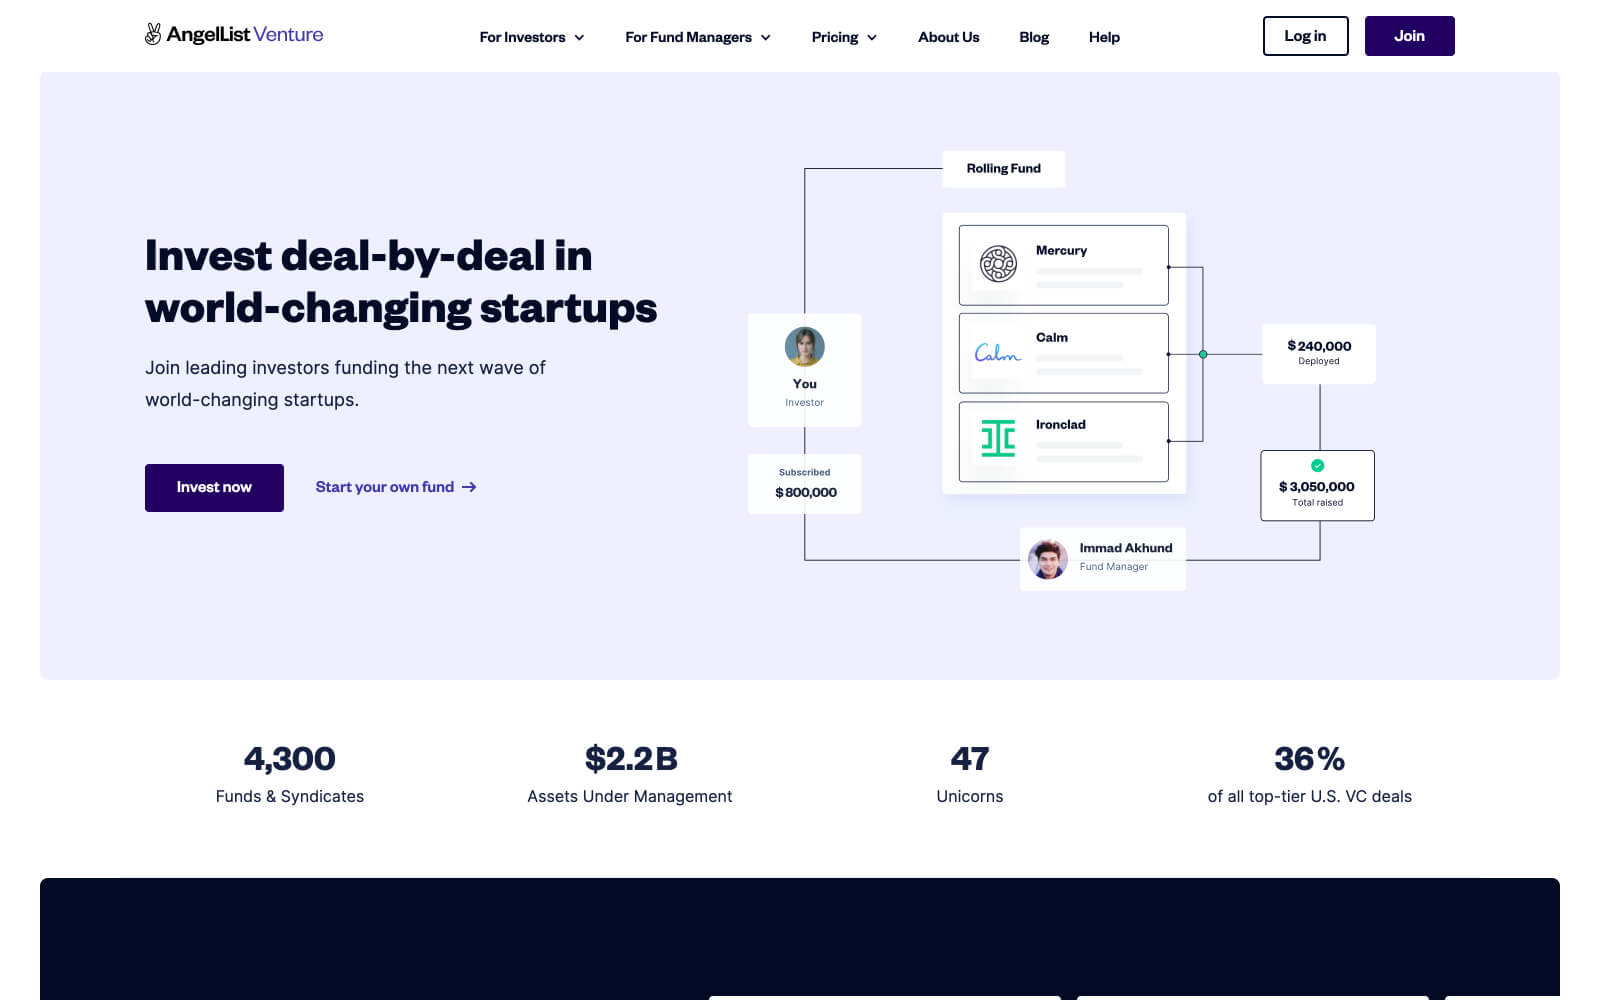 """The AngelList website that feels corporate and professional with an diagram of investment deal processes of startup tech companies next to a tagline of """"Invest deal-by-deal in world-changing startups"""""""